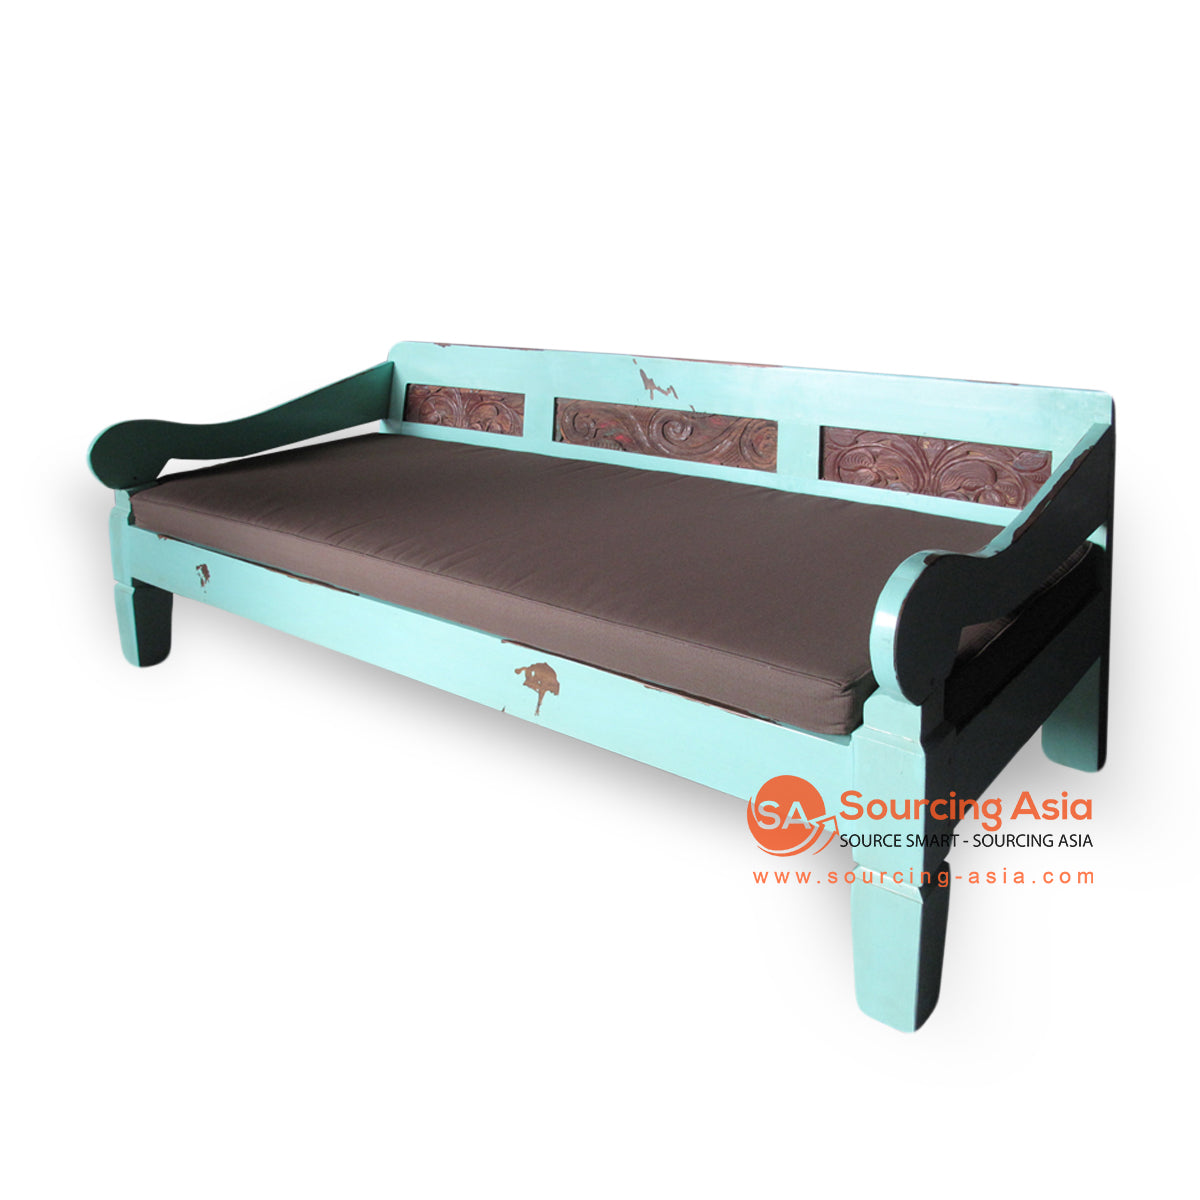 AYA001-SP4 DAYBED